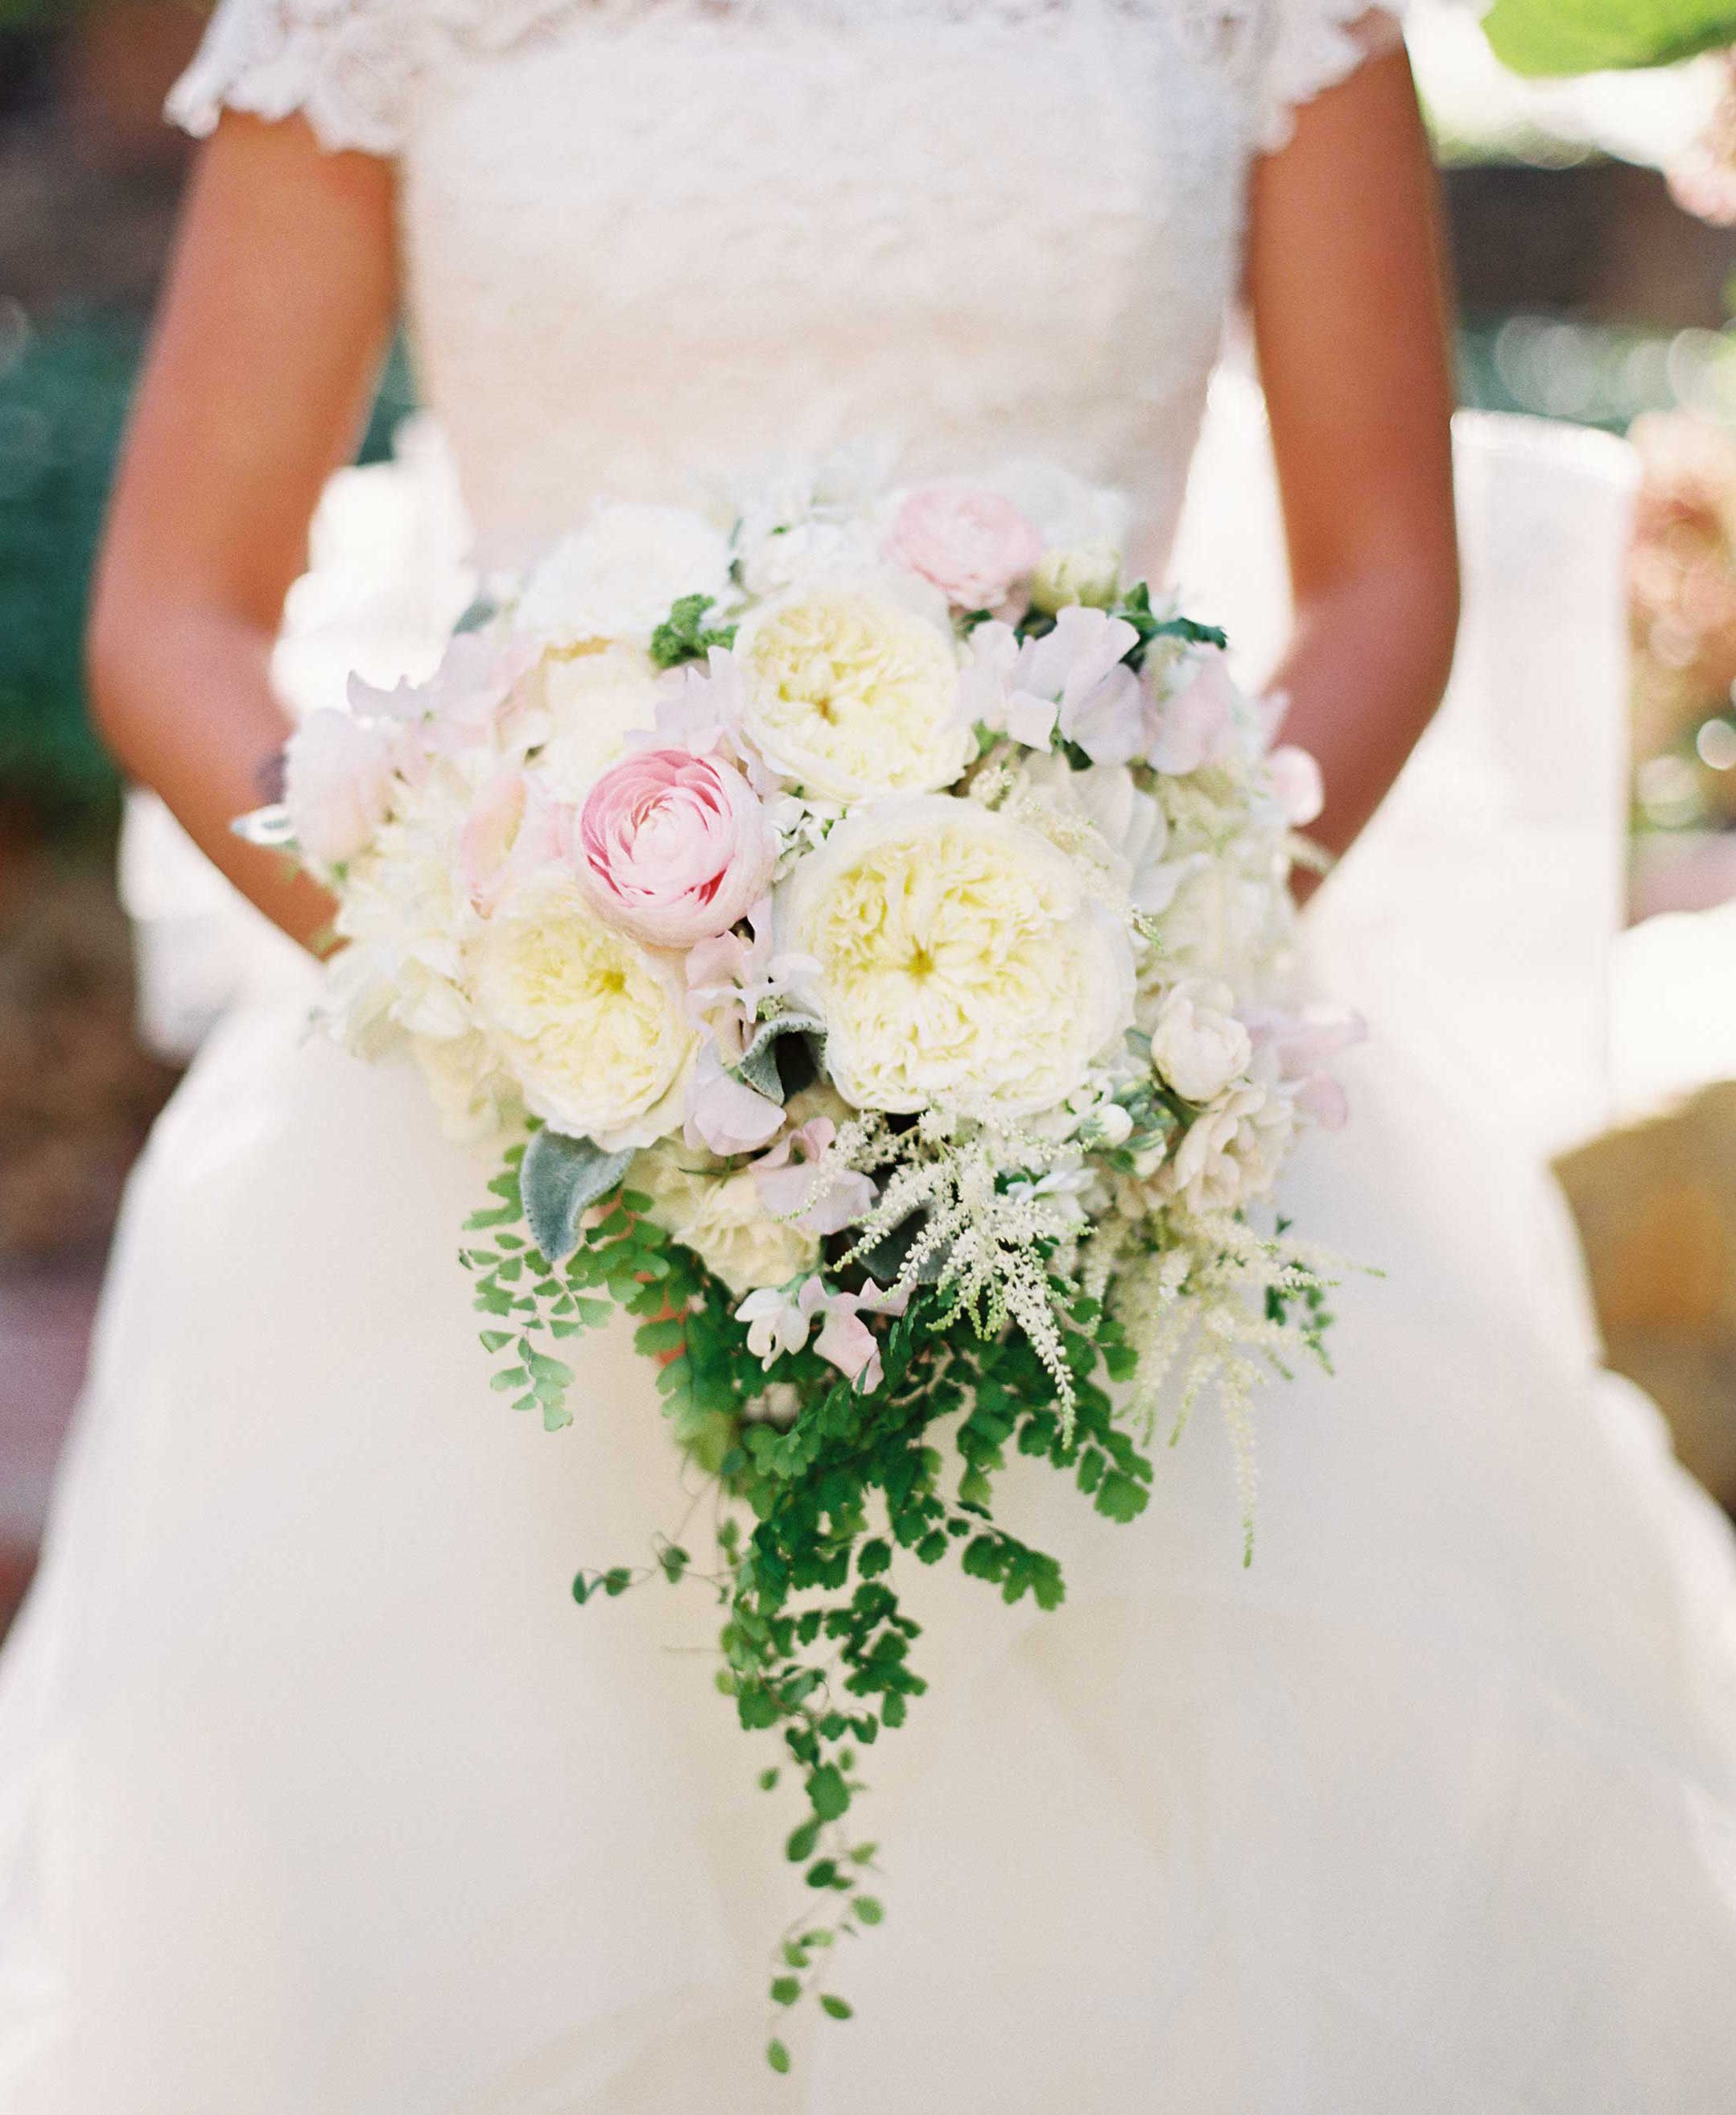 Cascading greenery from white and pink bouquet